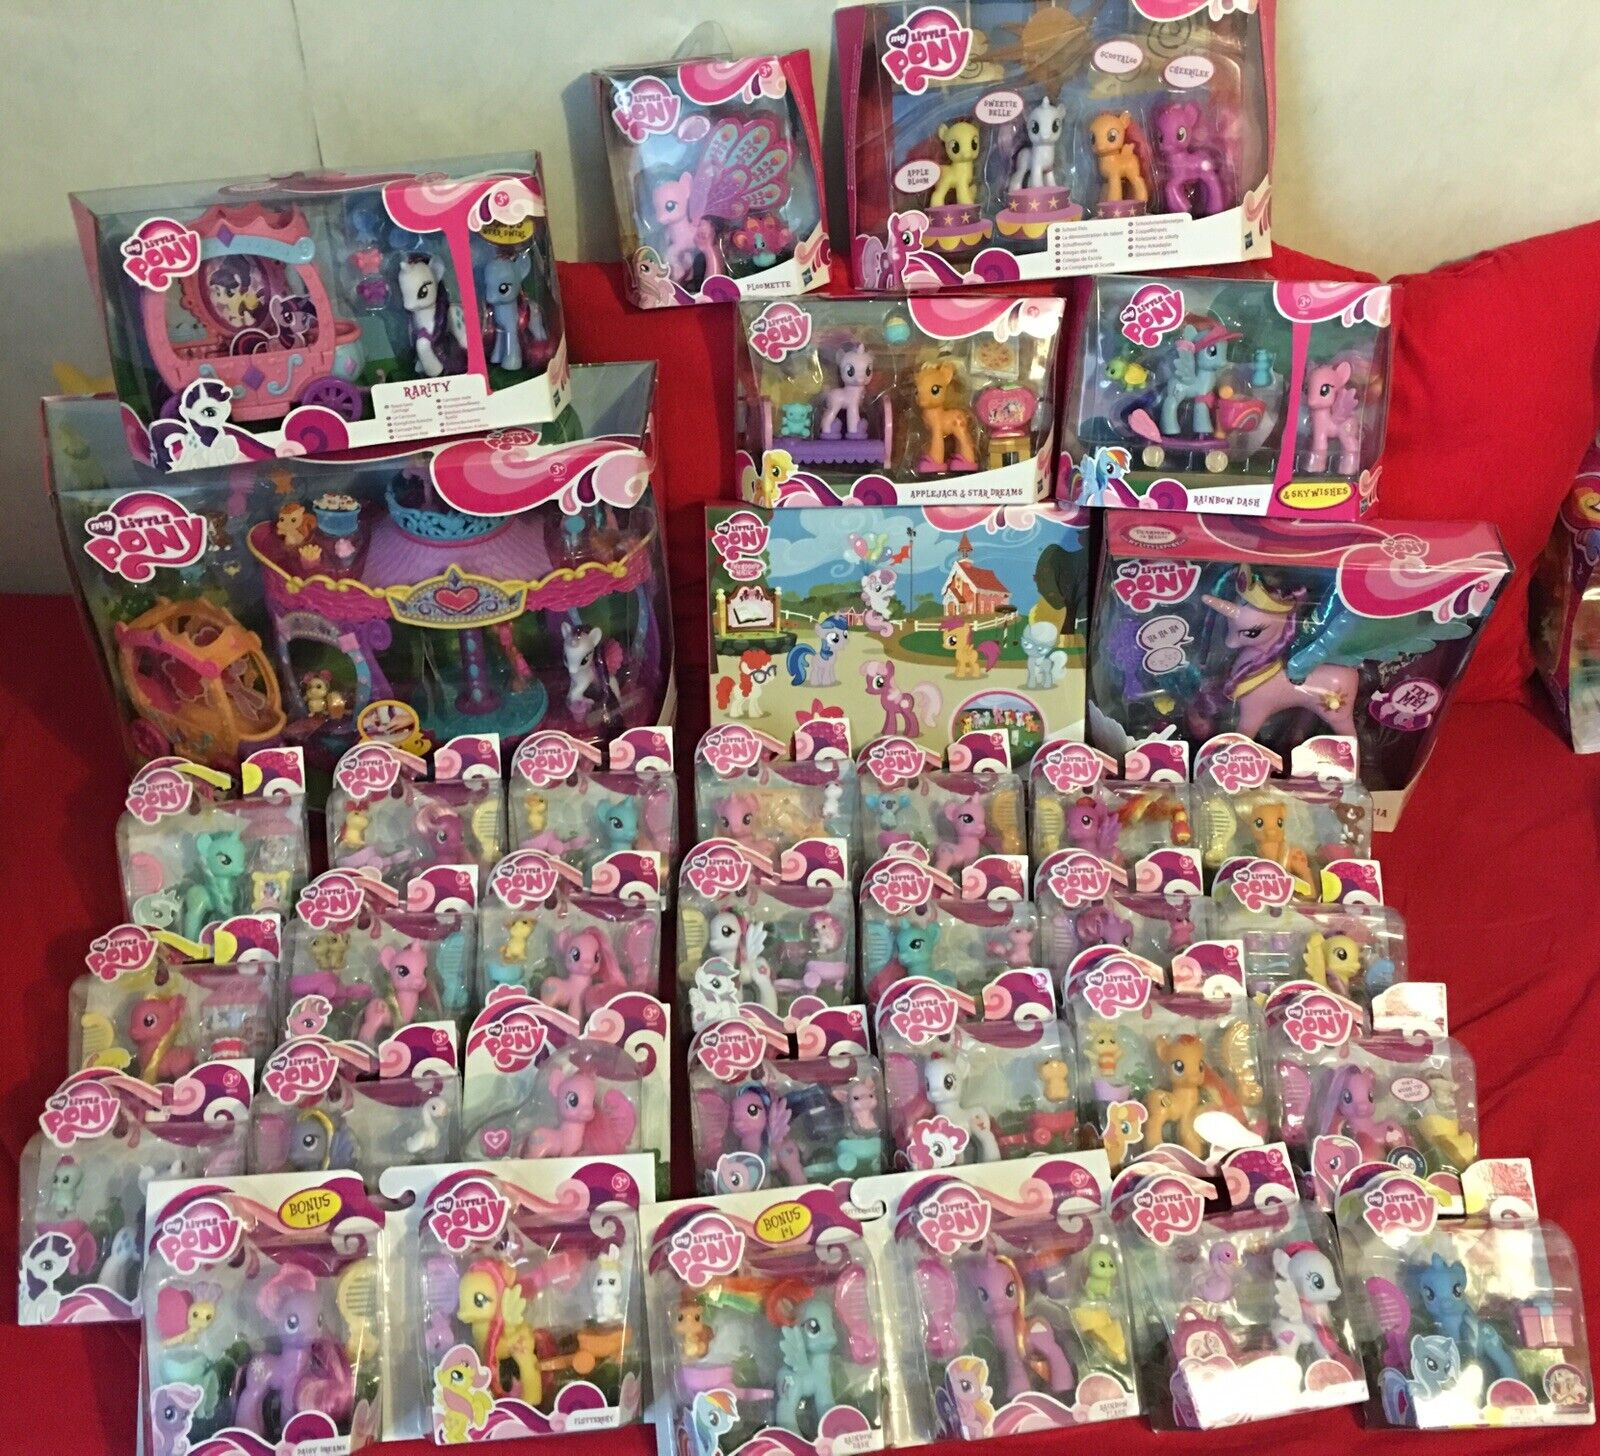 My little pony -G4 1ºwave- Amazing Amazing Amazing Lot of Pony Hasbro, BRe nuovo VERY VERY RARE fff1a8